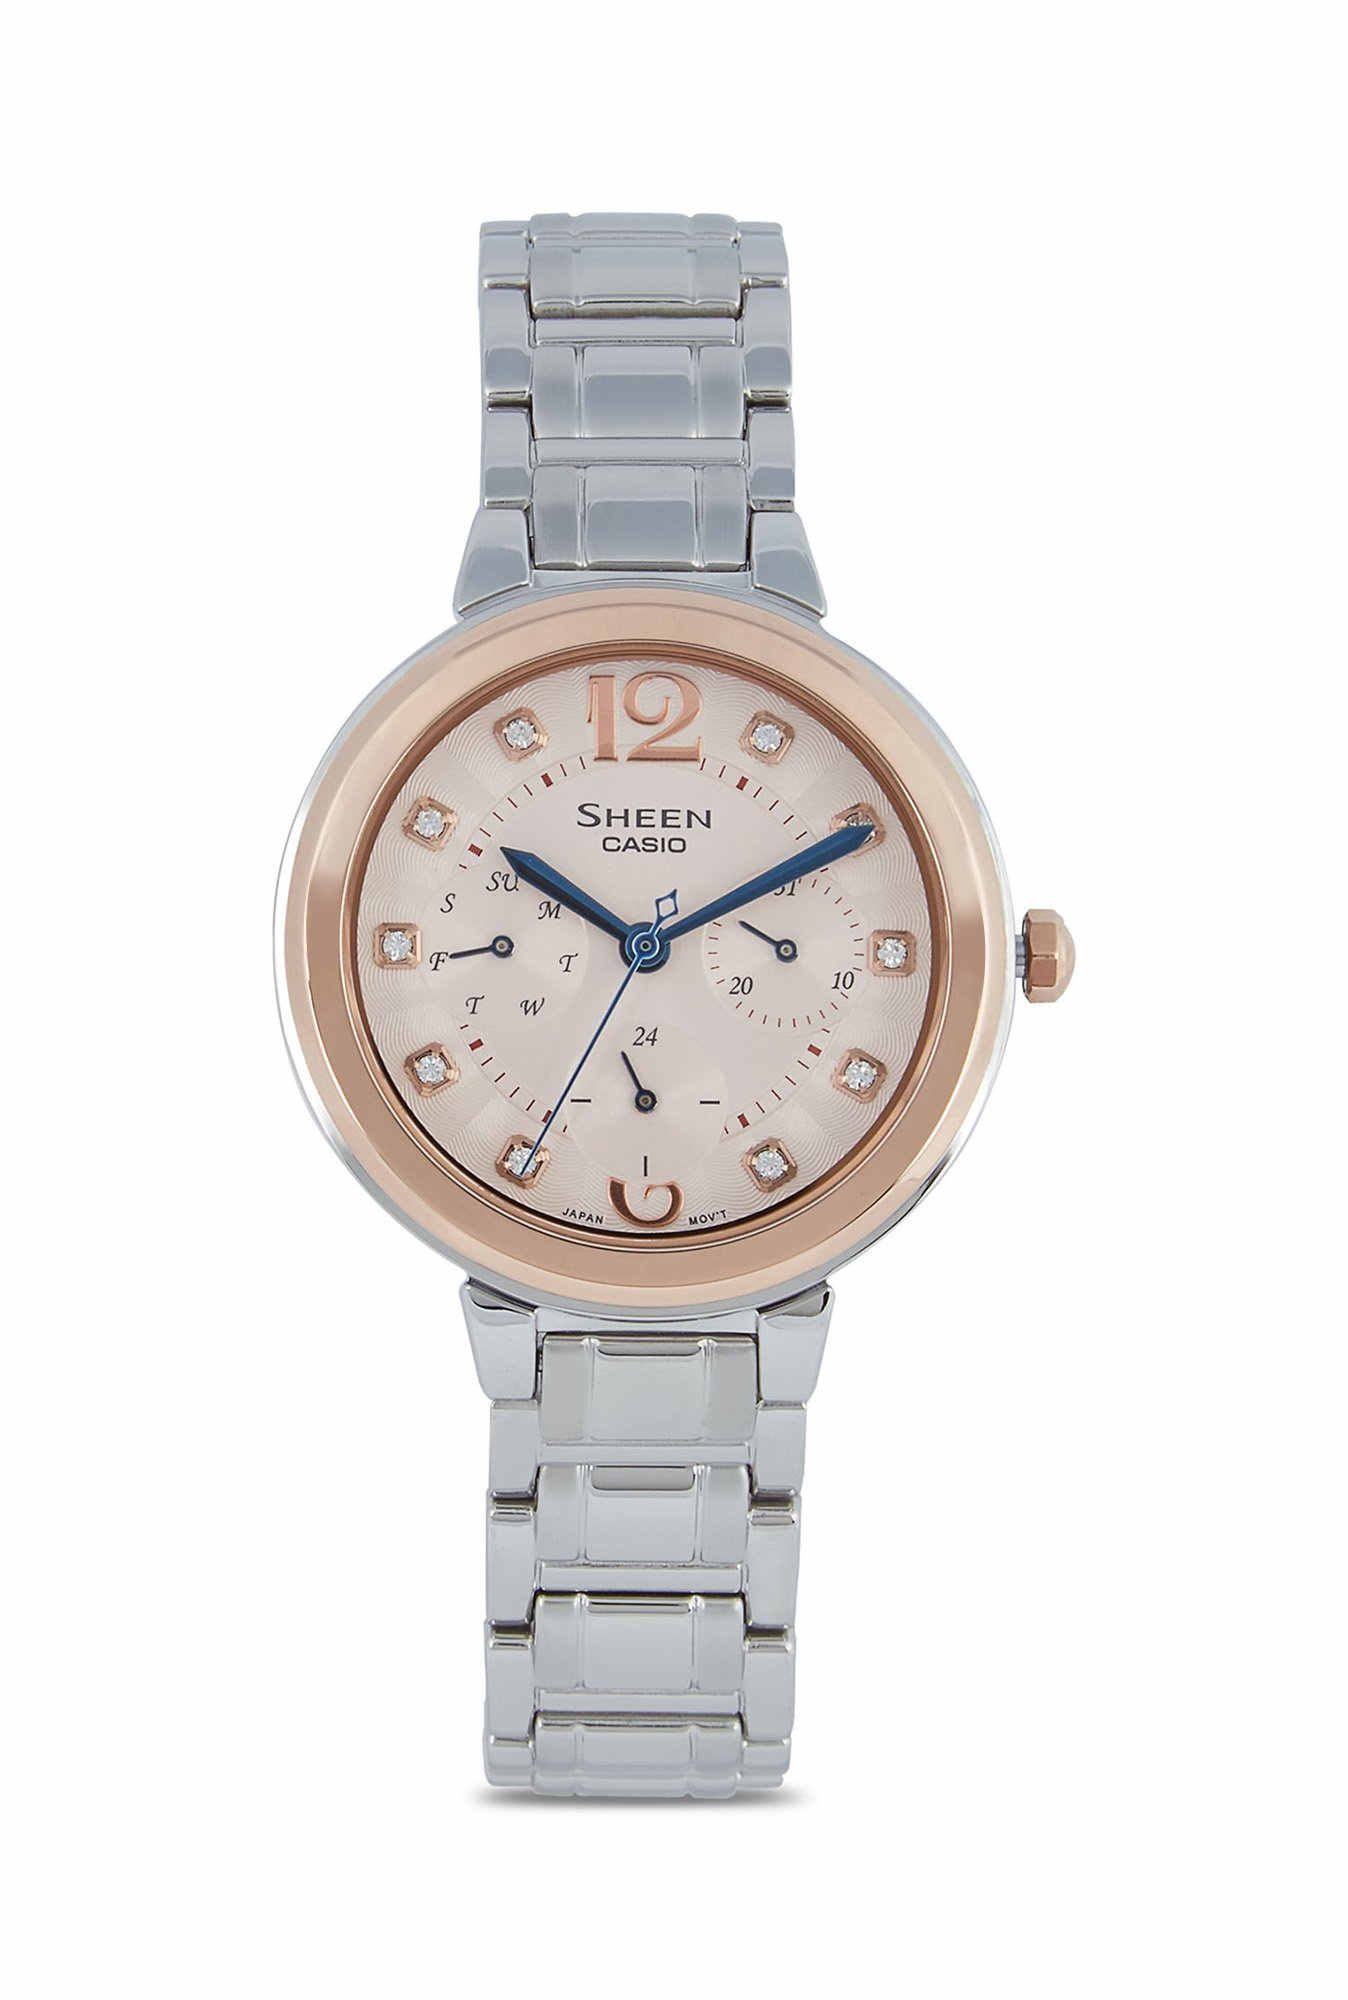 Casio Sheen SHE-3048SG-7AUDR Analog Rose Gold Dial Women's Watch (SHE-3048SG-7AUDR)